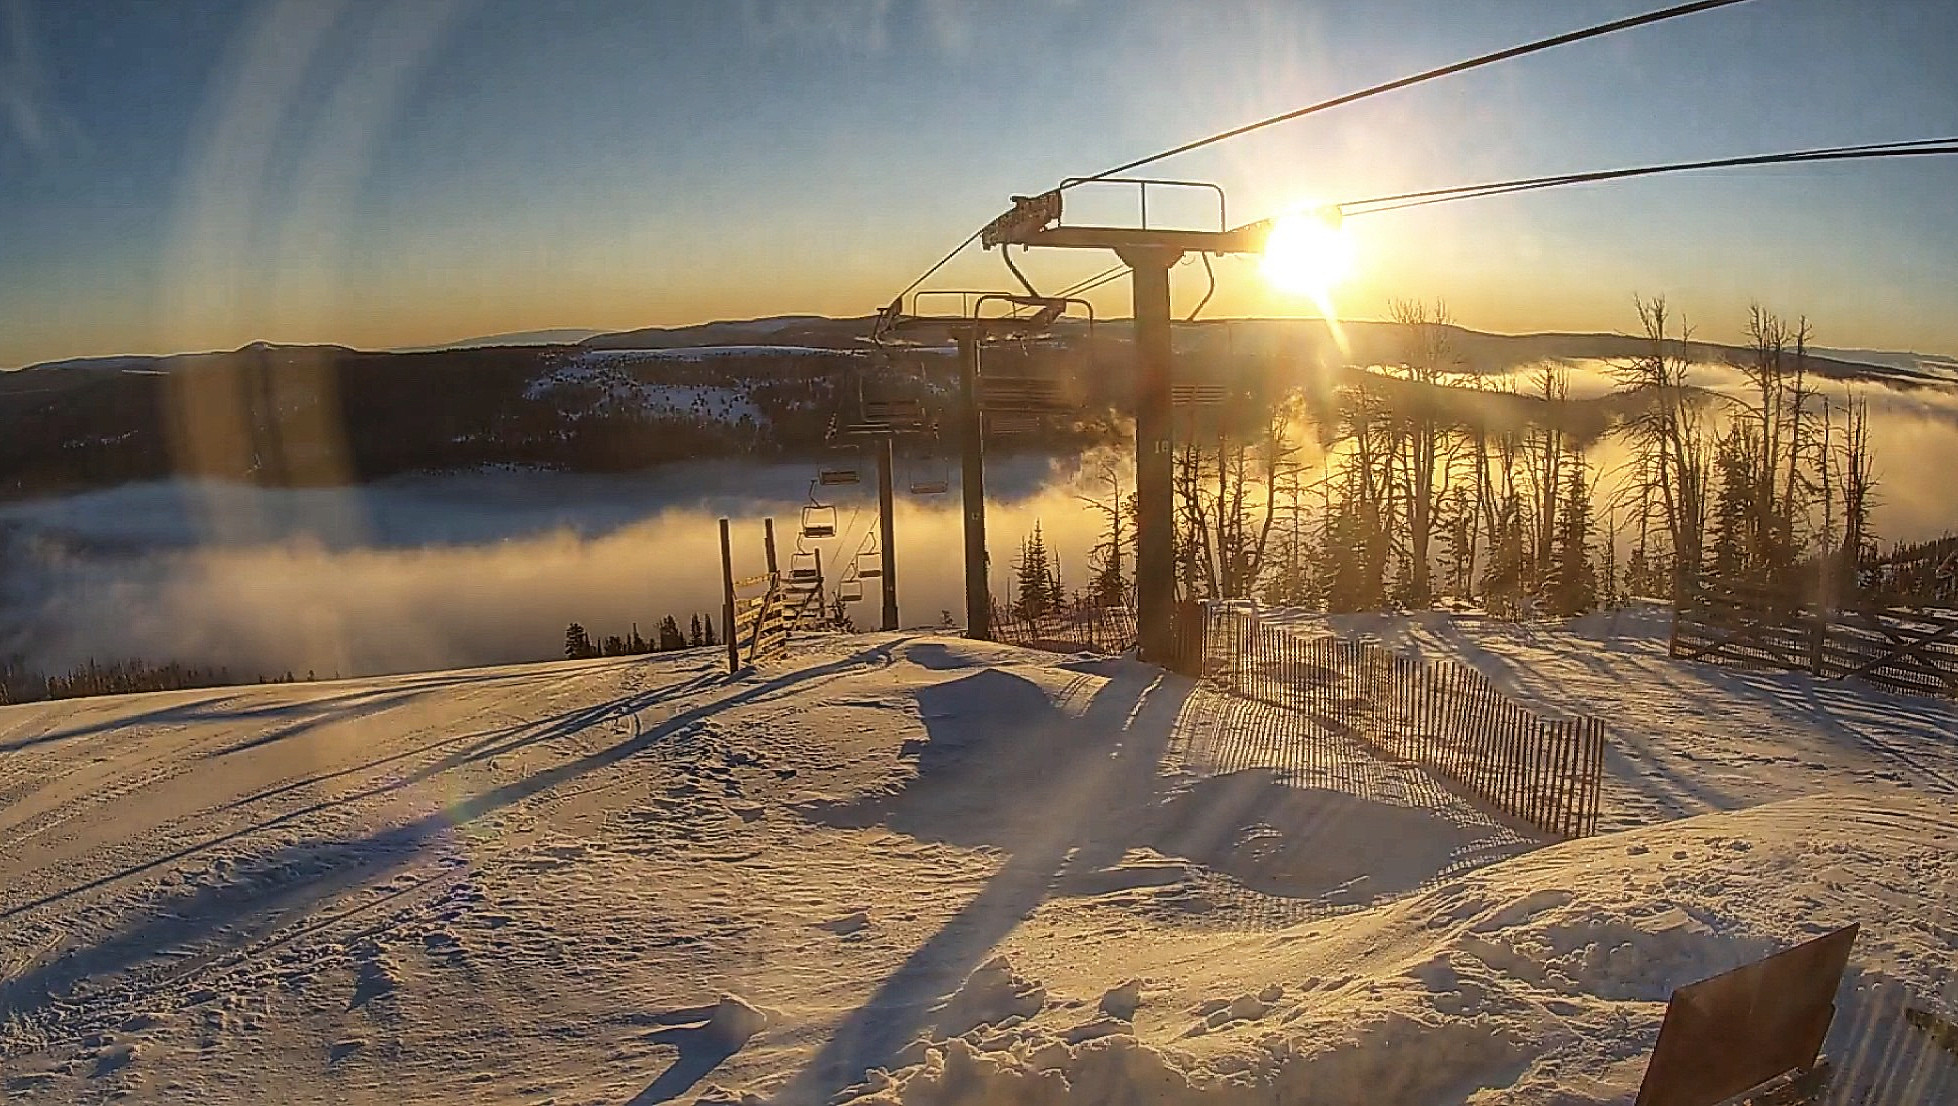 Webcam located on top of Porphyry Peak from the Triple Chair terminal at Showdown Montana